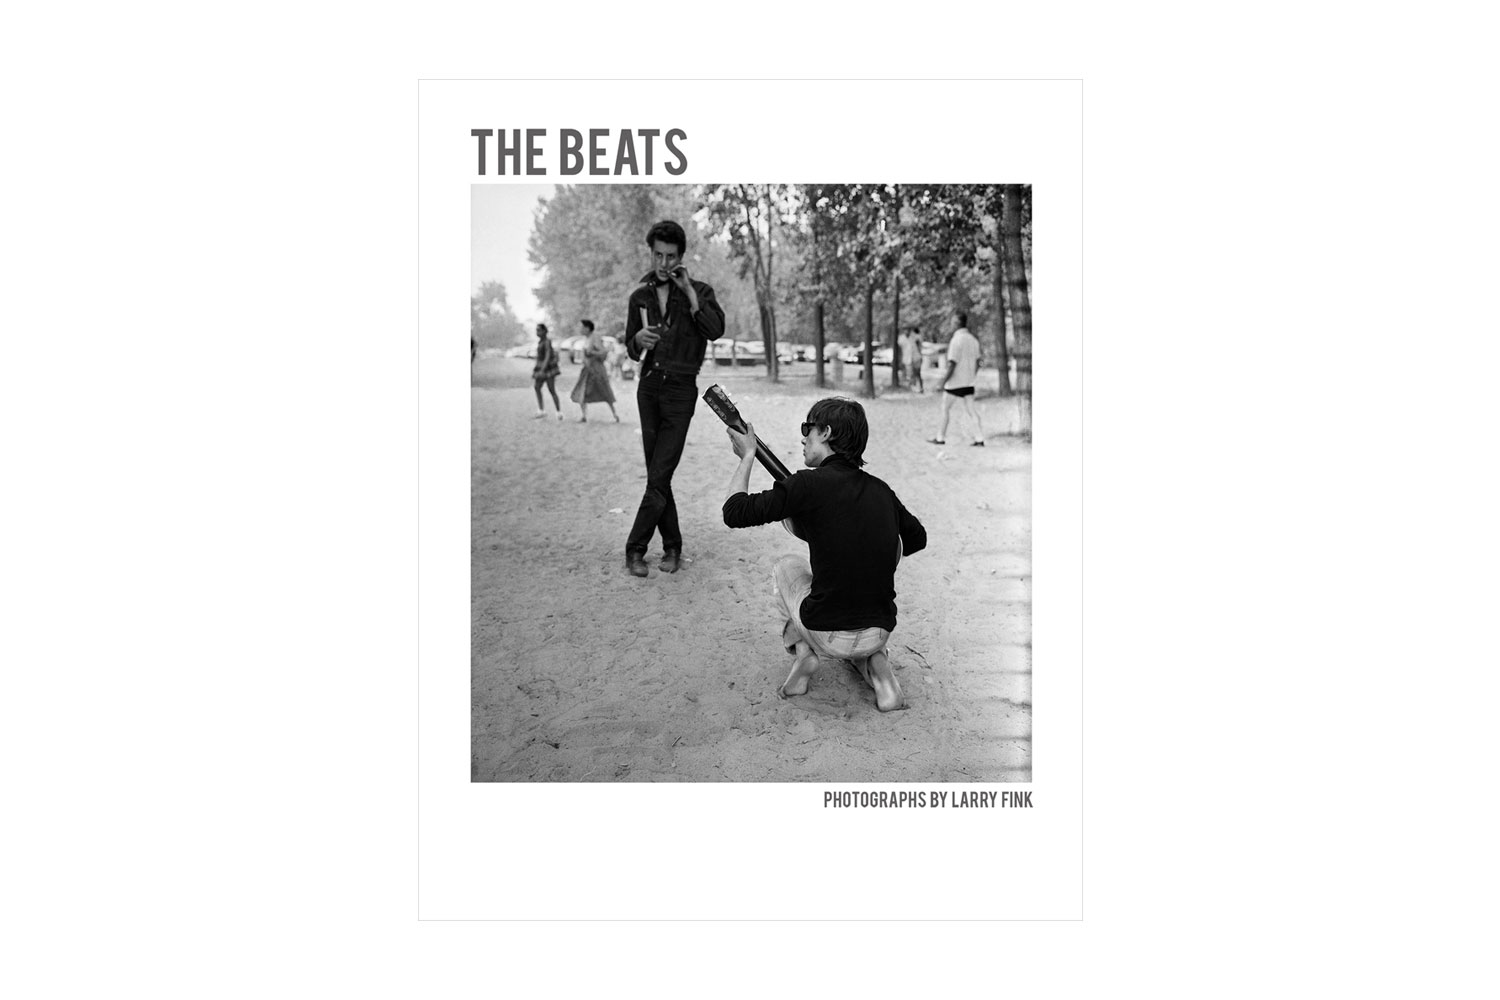 Larry Fink's The Beats, published by PowerHouse books College dropout turned legendary photographer, Larry Fink chronicled The Beats as both a naive observer and kindred spirit in a quest for cultural enlightenment that started on MacDougal Street and ended in debauchery.